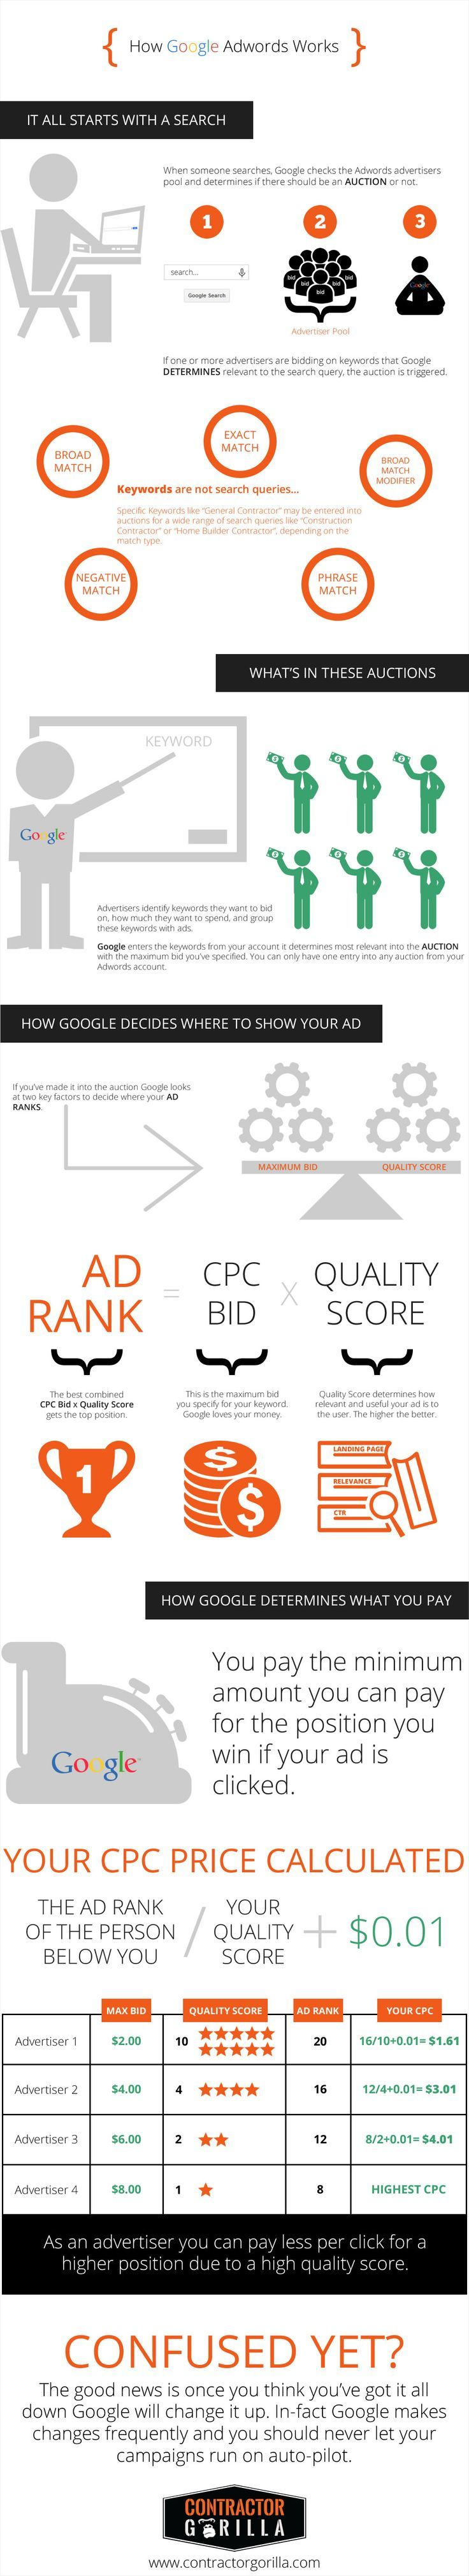 Infographic: How Google Adwords Works